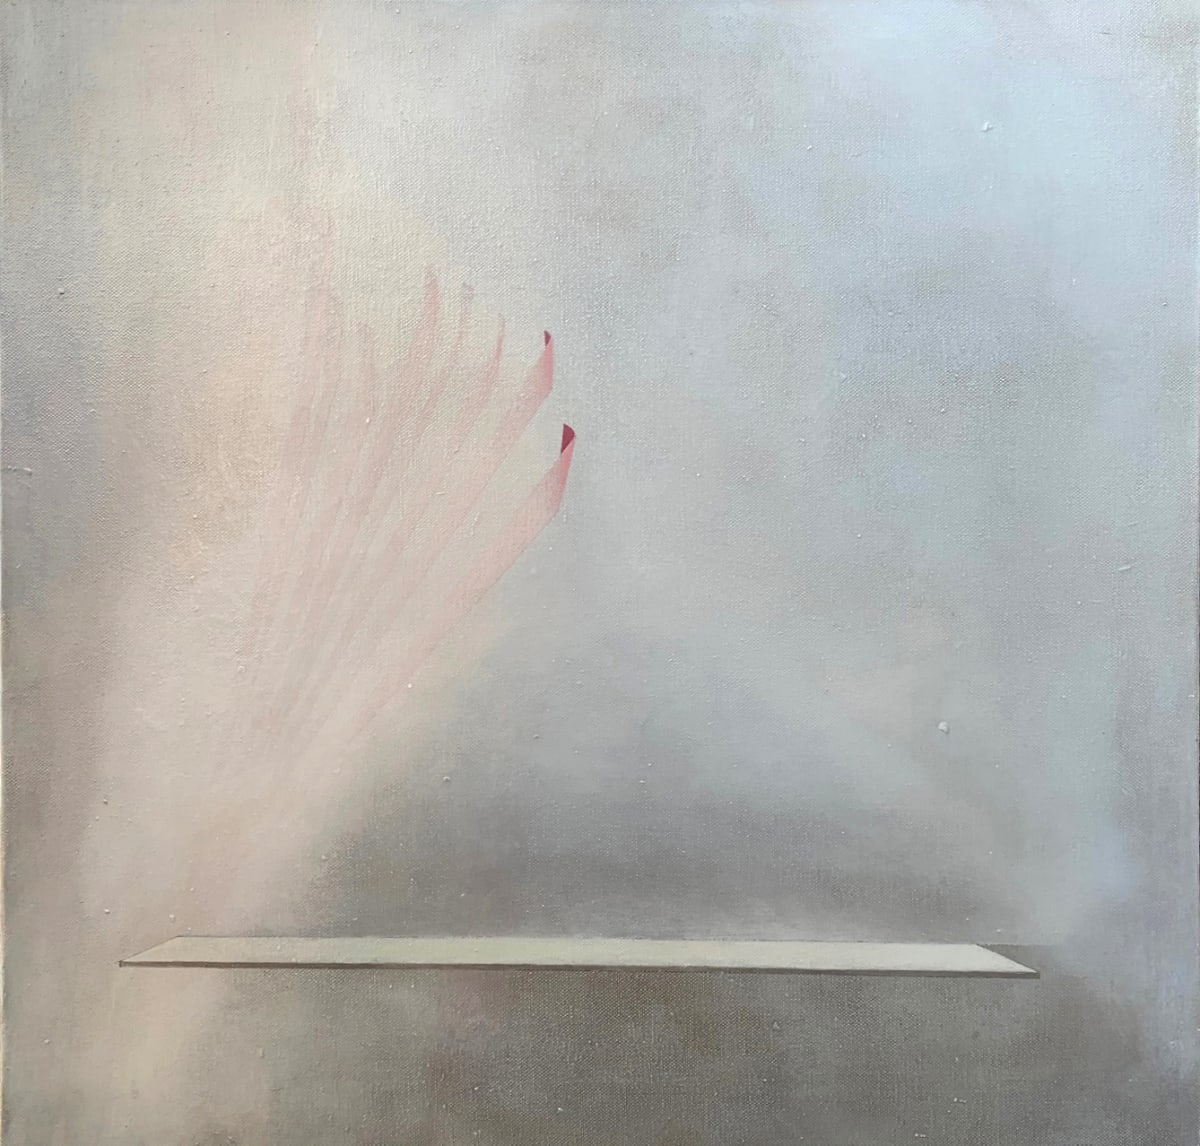 Gillian Lawler Platform Oil on canvas 60 x 60 cm